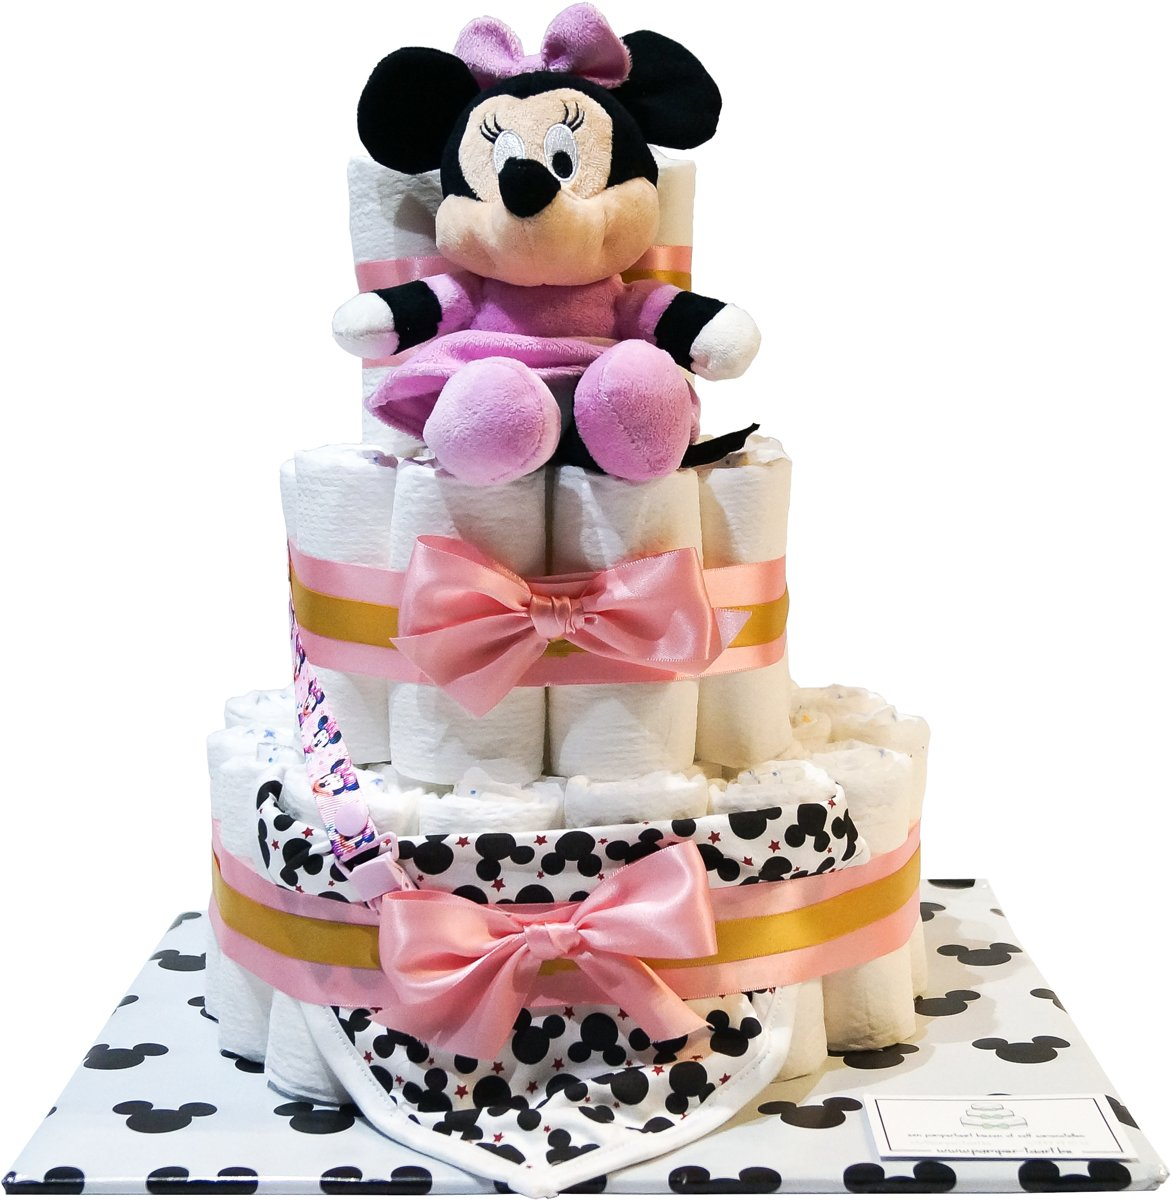 Luiertaart - Pampertaart Meisje Minnie Mouse - 52 Pampers - Roze